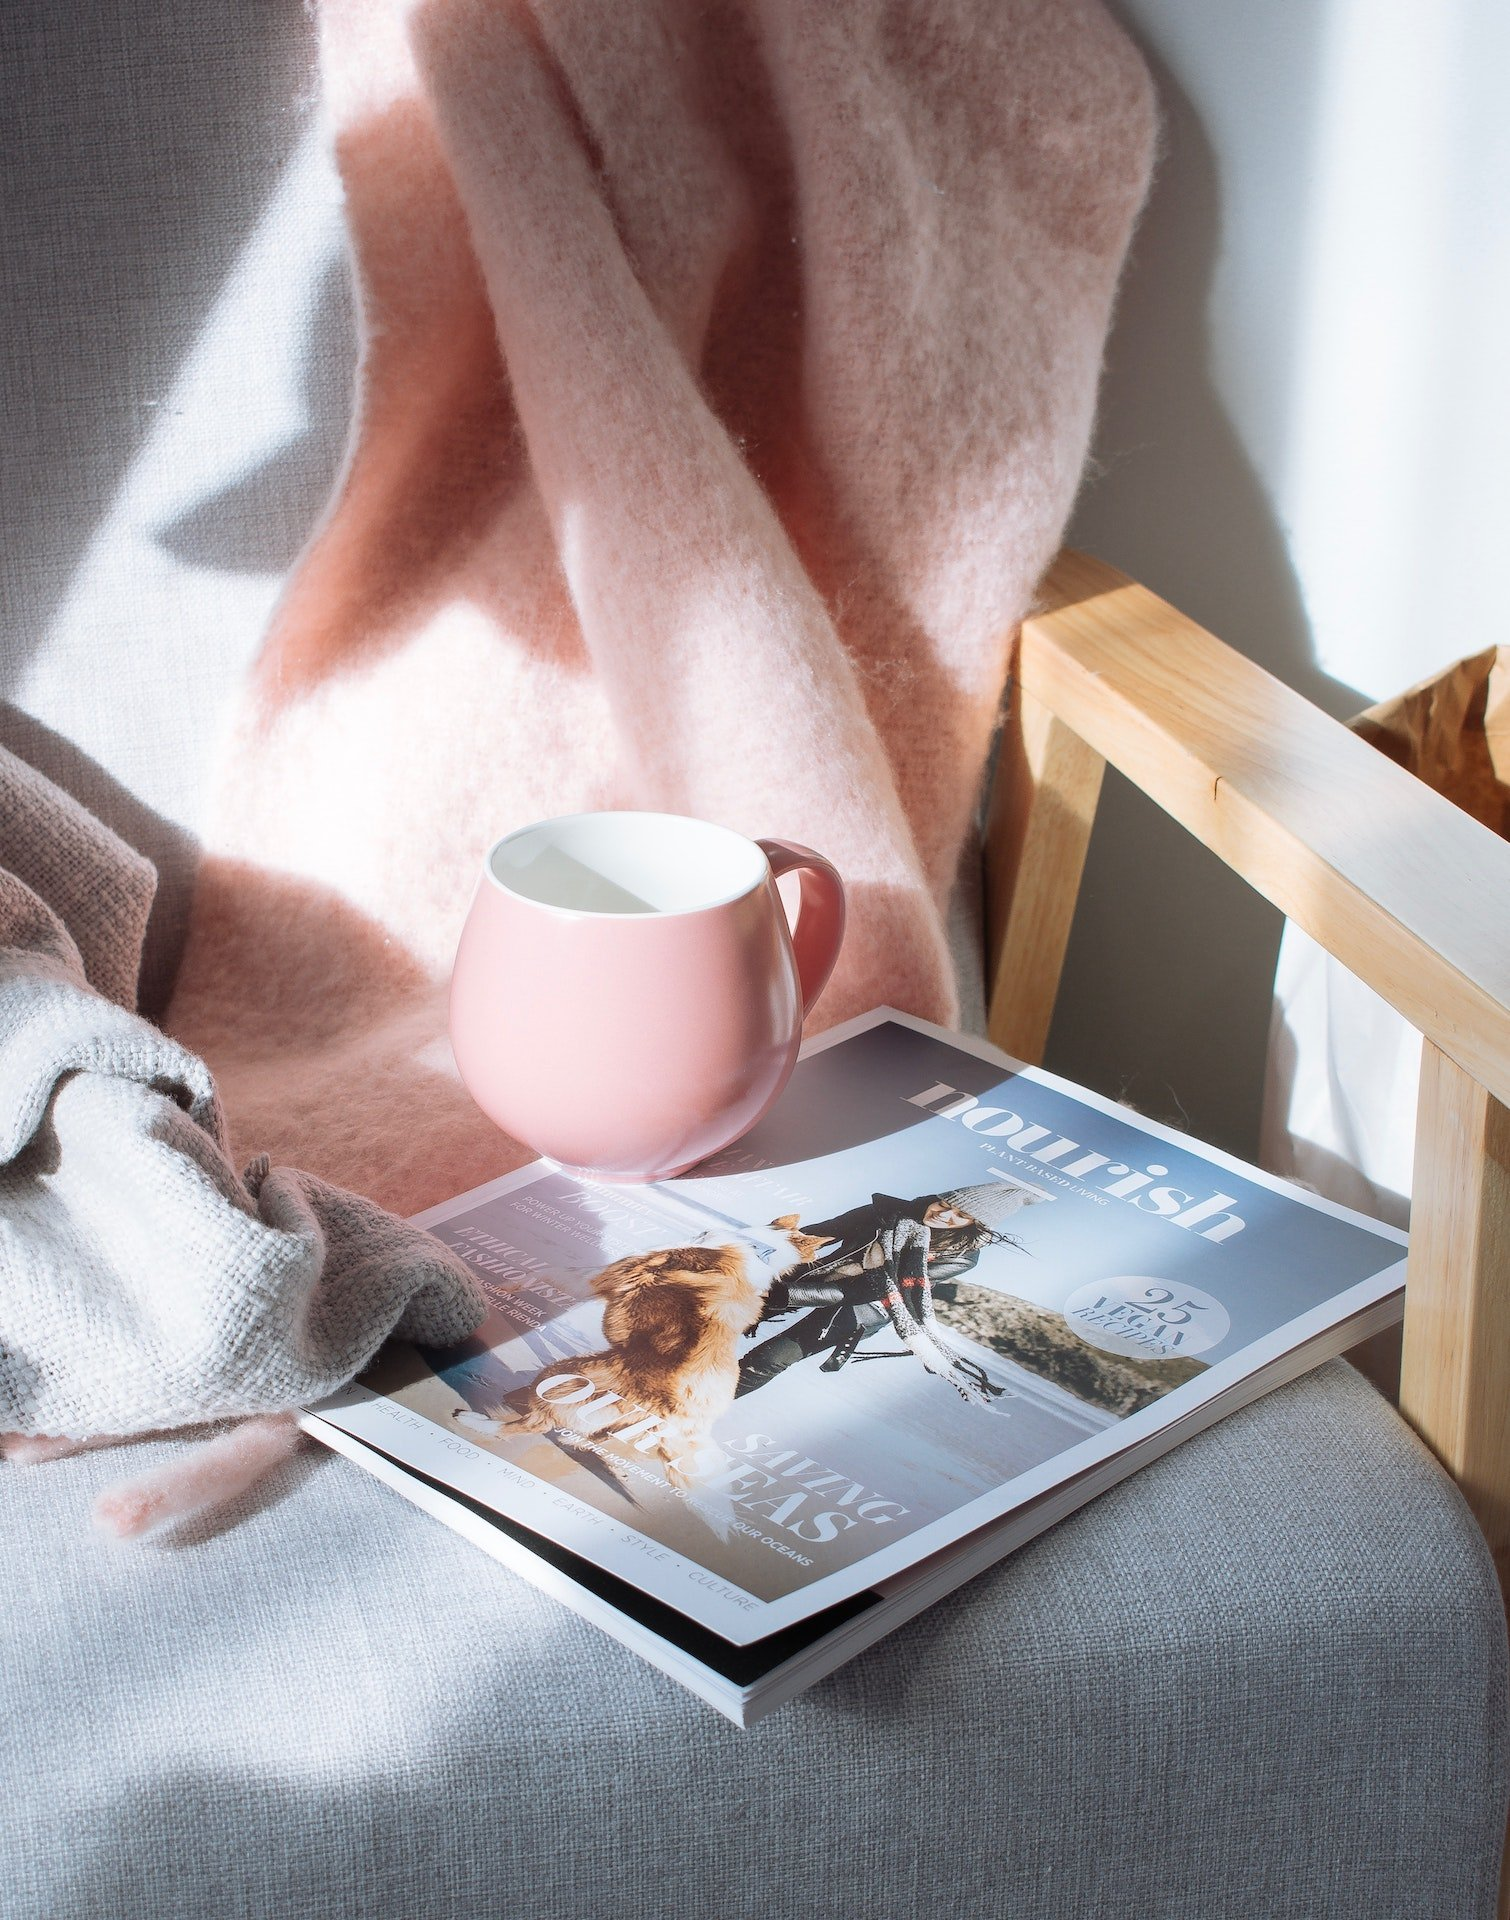 Pink mug and magazine on chair with pink blanket.